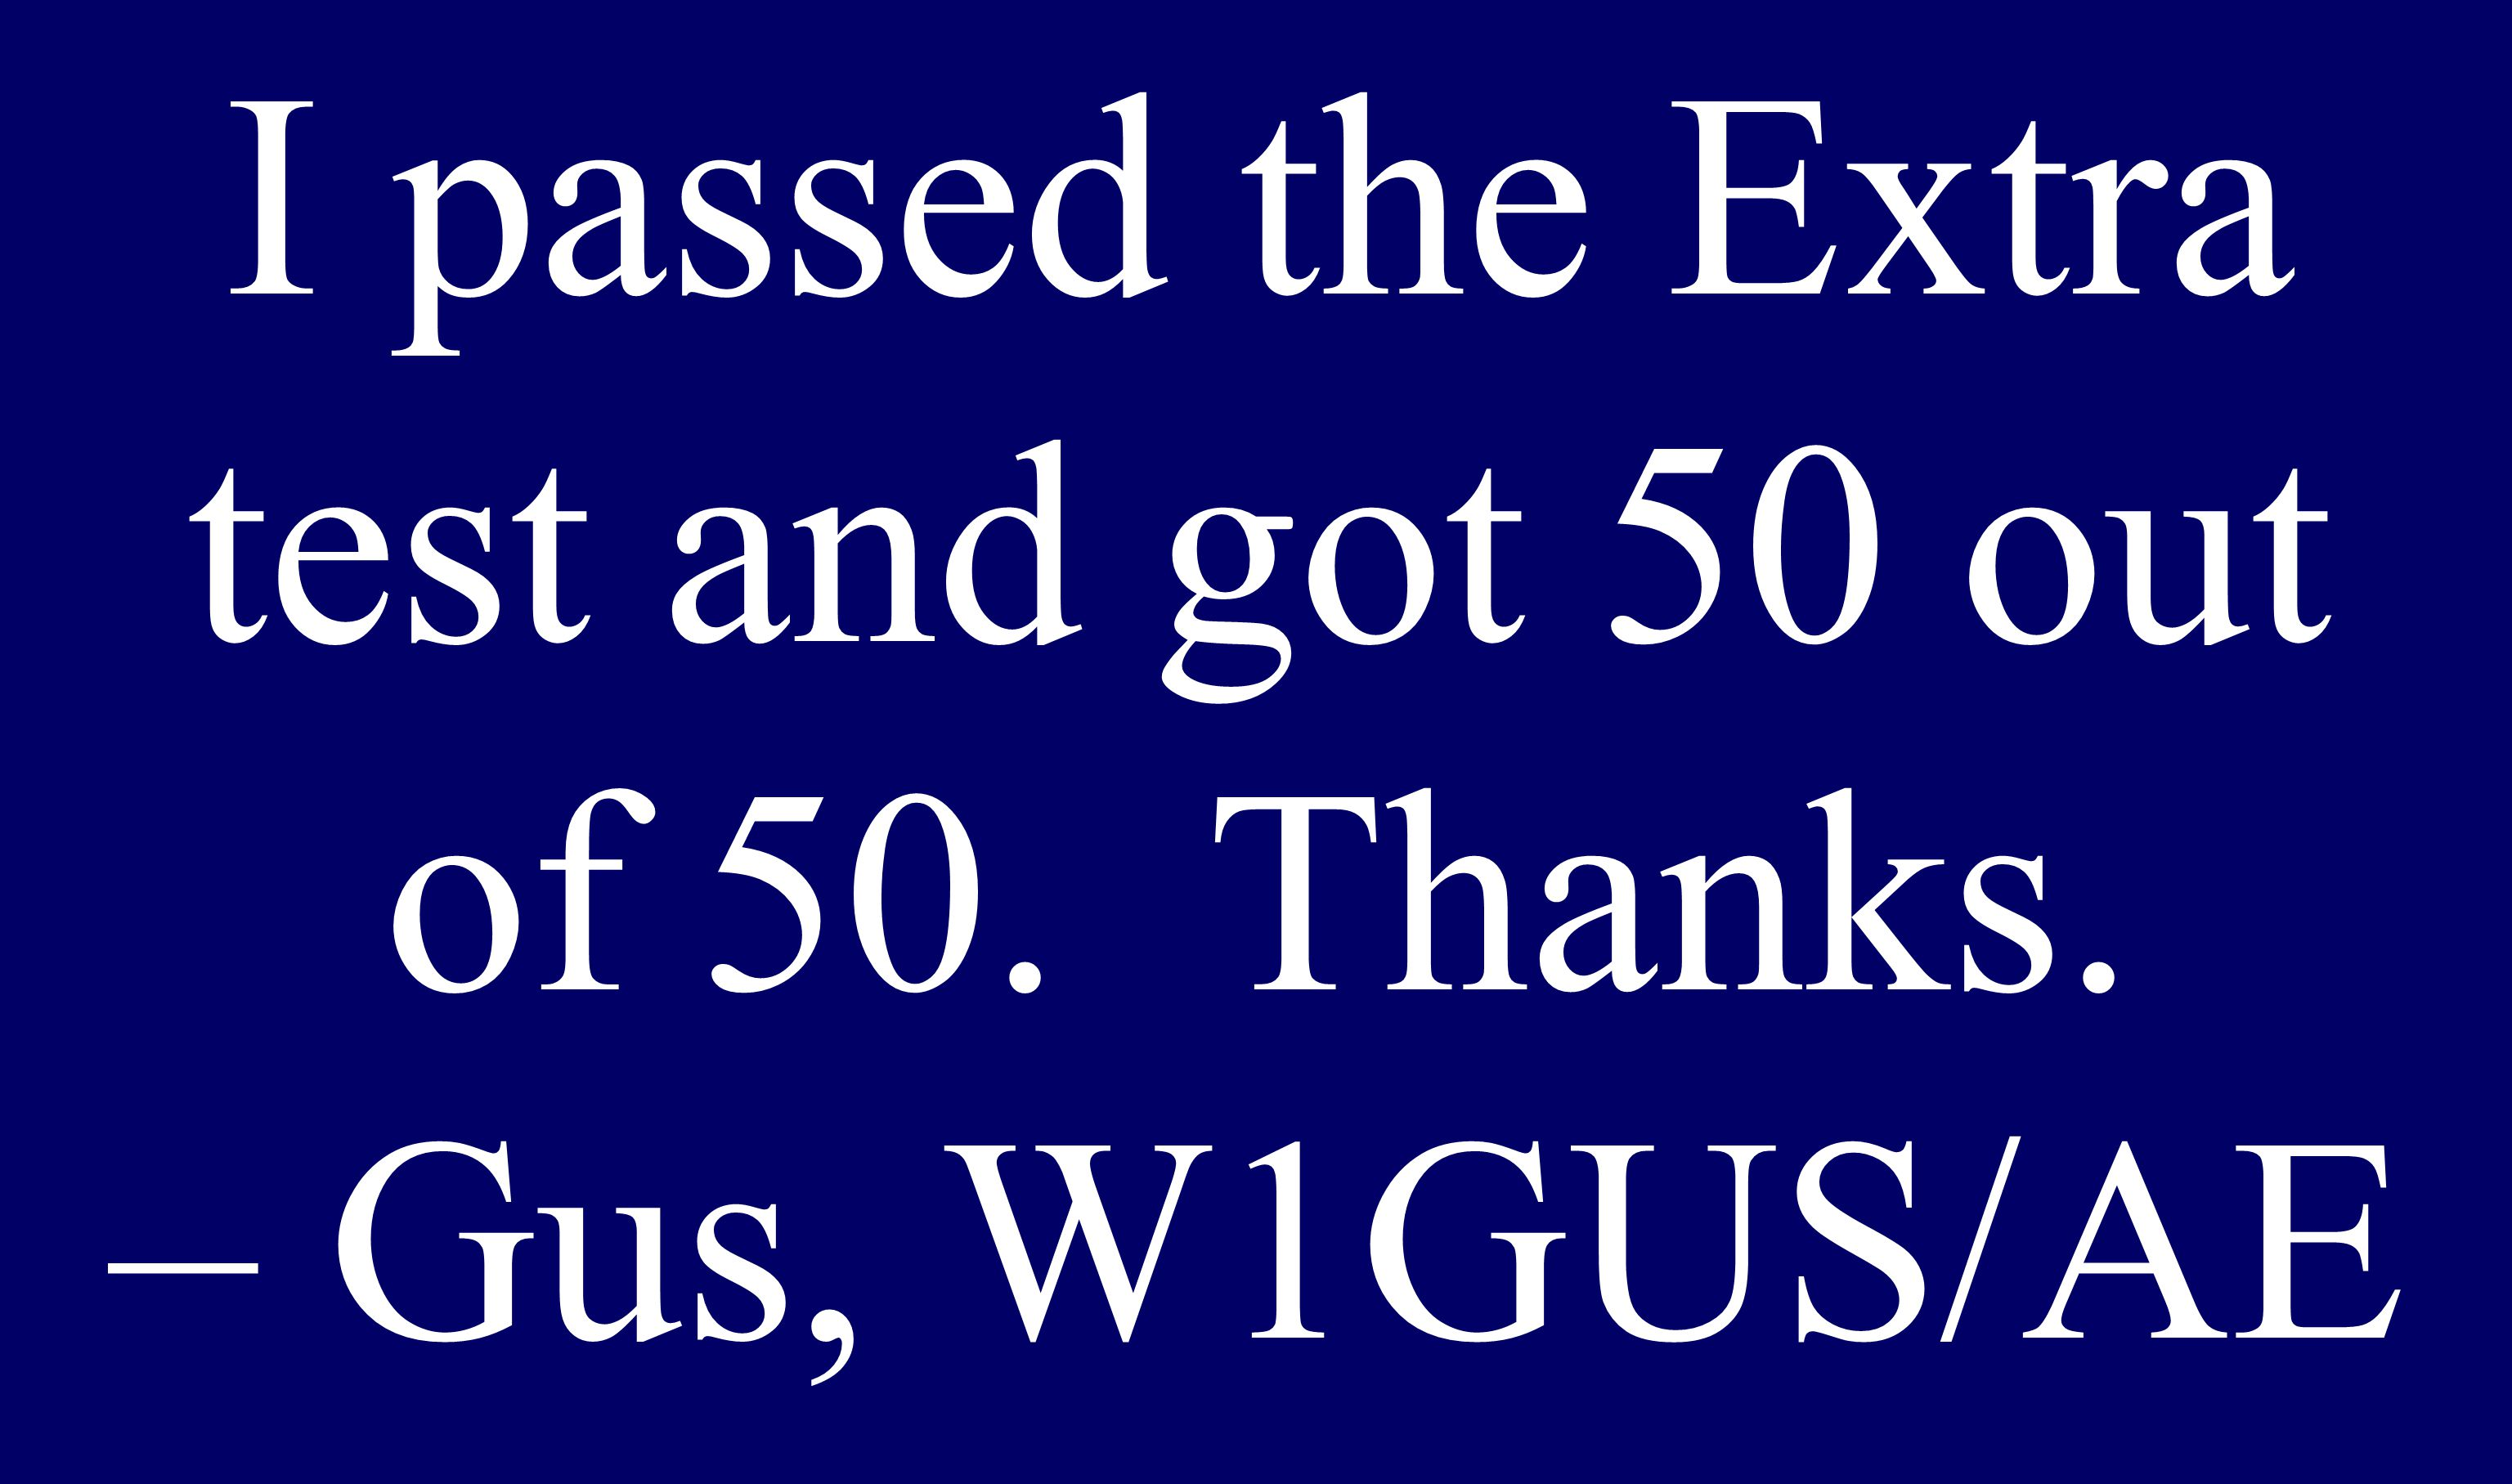 I passed the Extra test and got 50 out of 50. Thanks. – Gus, W1GUS/AE